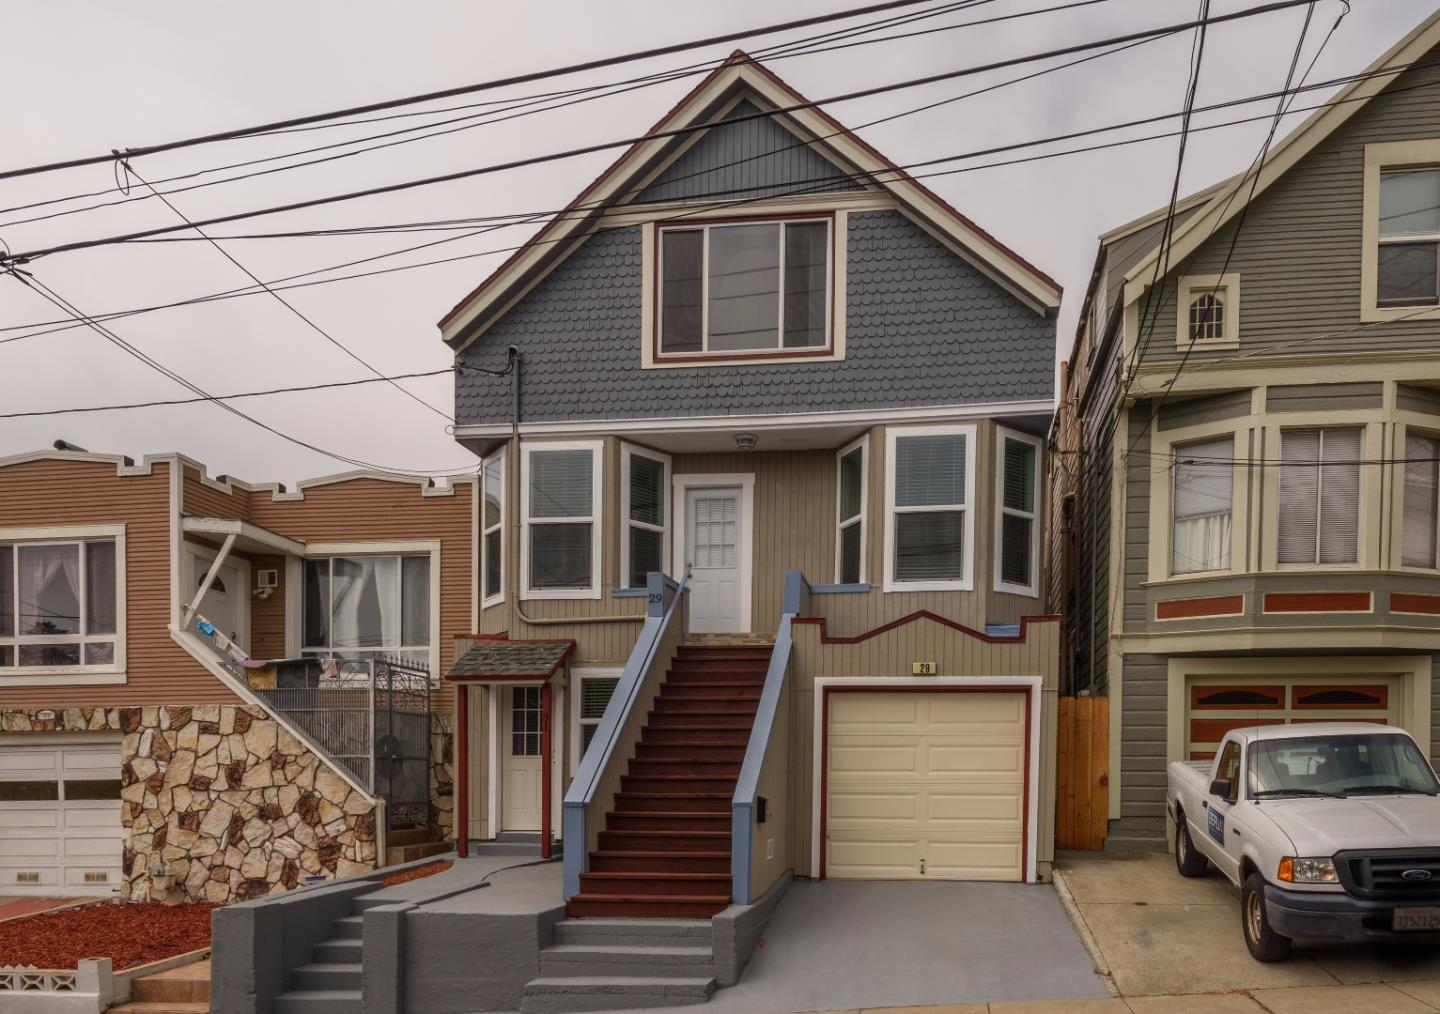 29 Gambetta St Daly City Ca 94014 Mls 81655113 Coldwell Banker